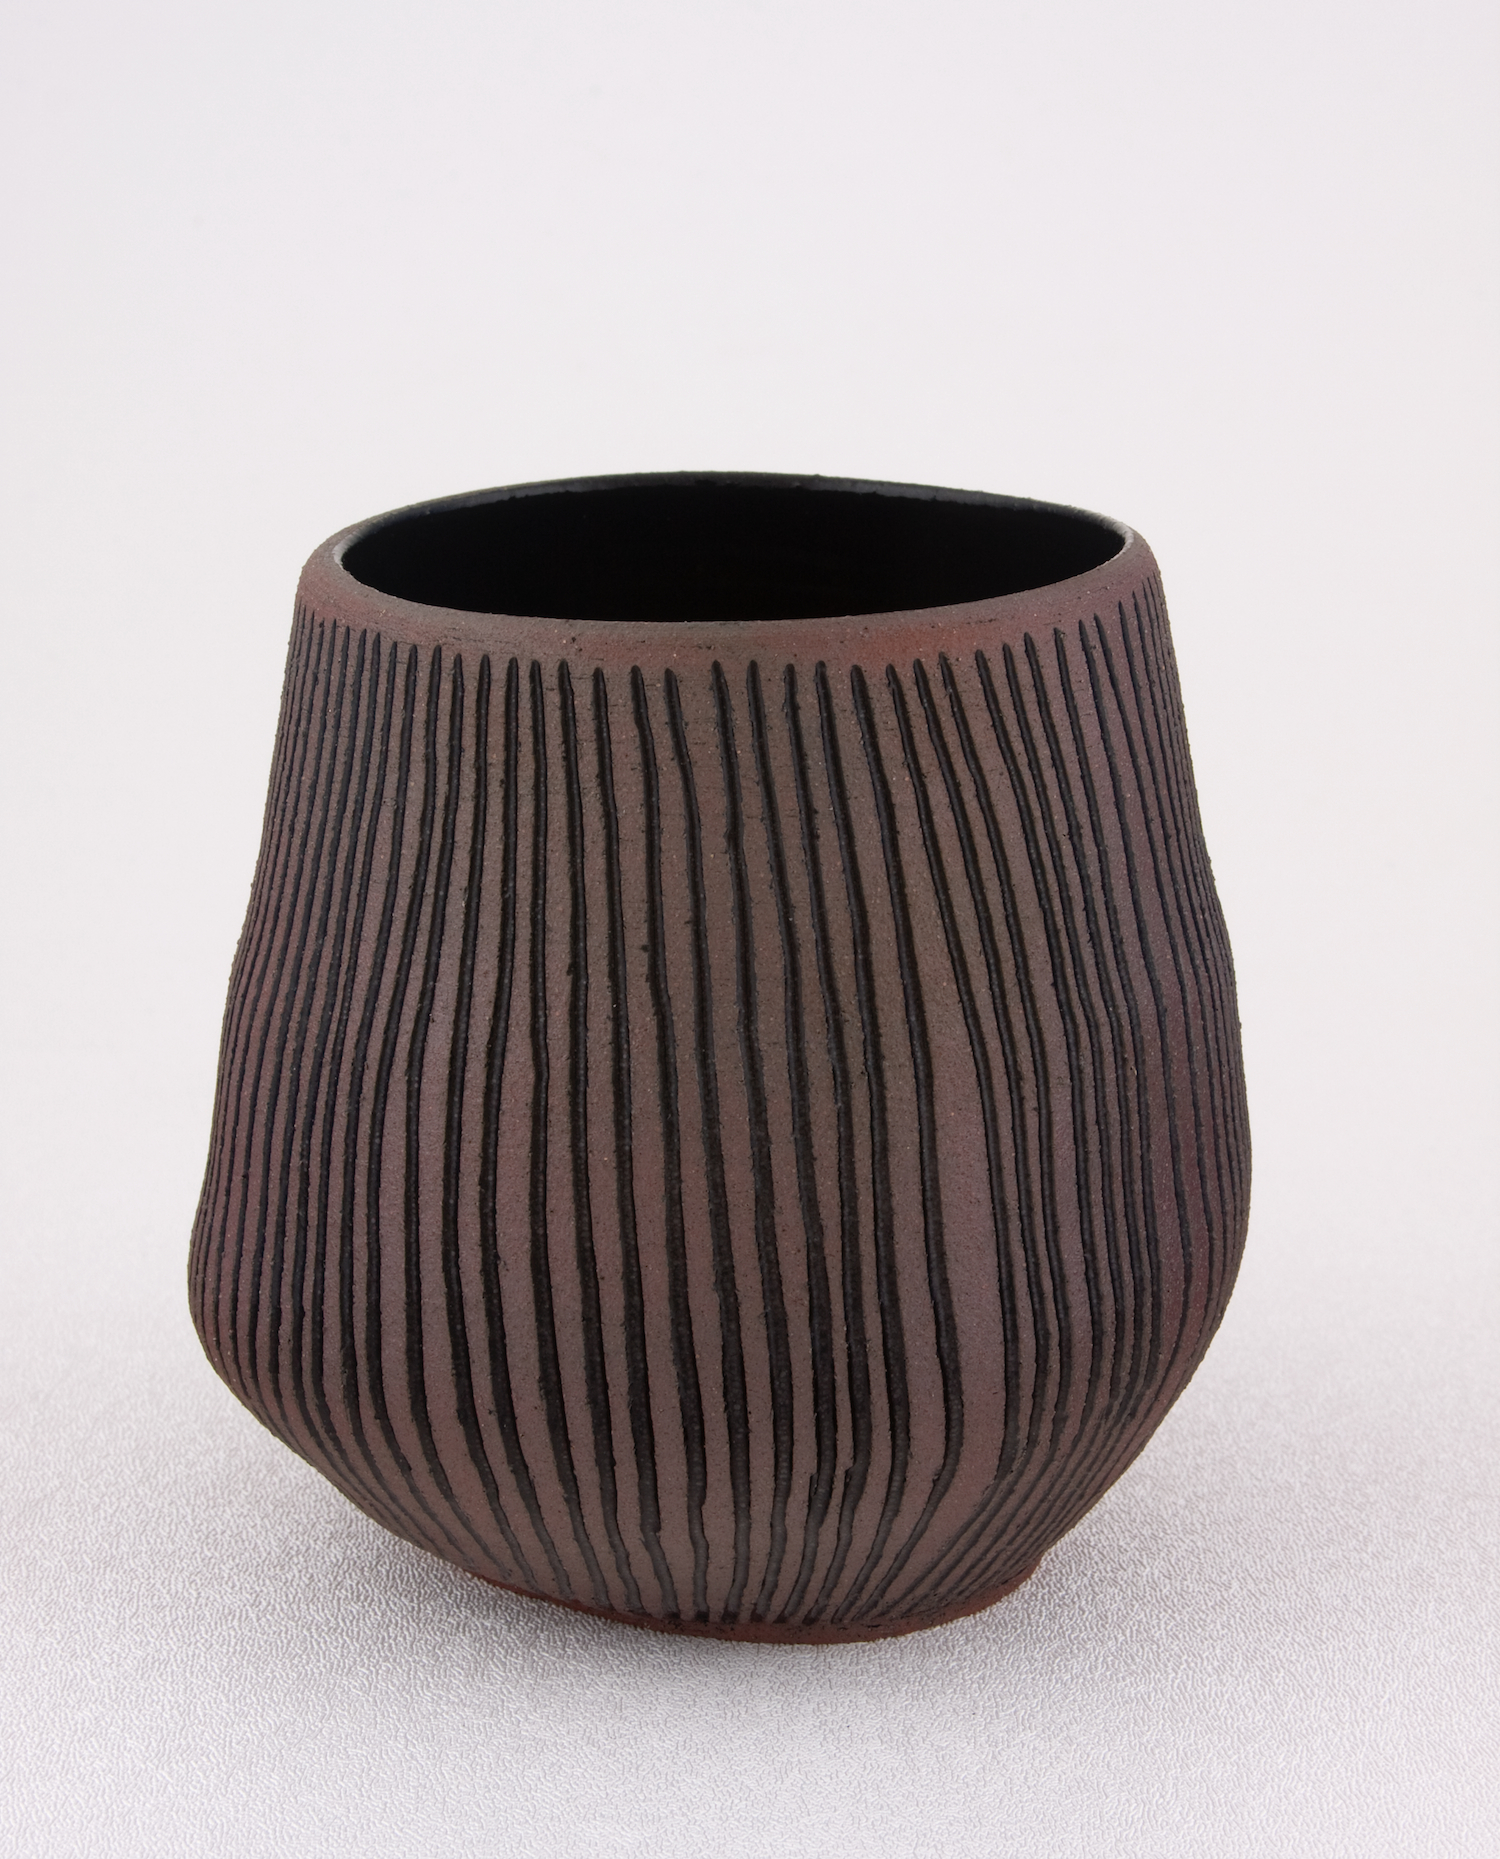 Shio Kusaka  Untitled (carved stripe 2)  2009 Stoneware 4 ½h x 4w x 4d in SK022